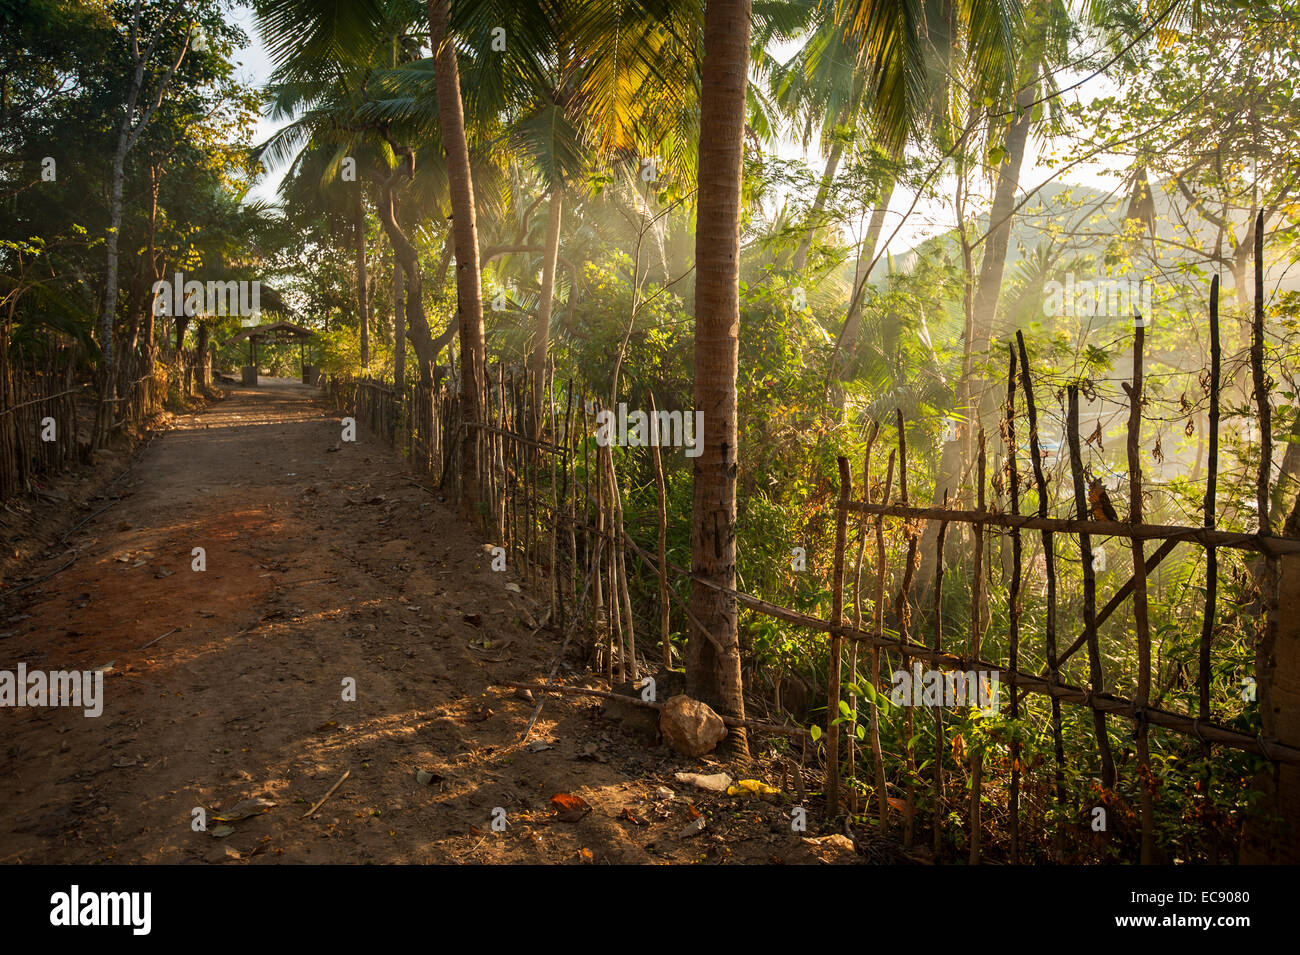 Deserted road in on tropical island - Stock Image